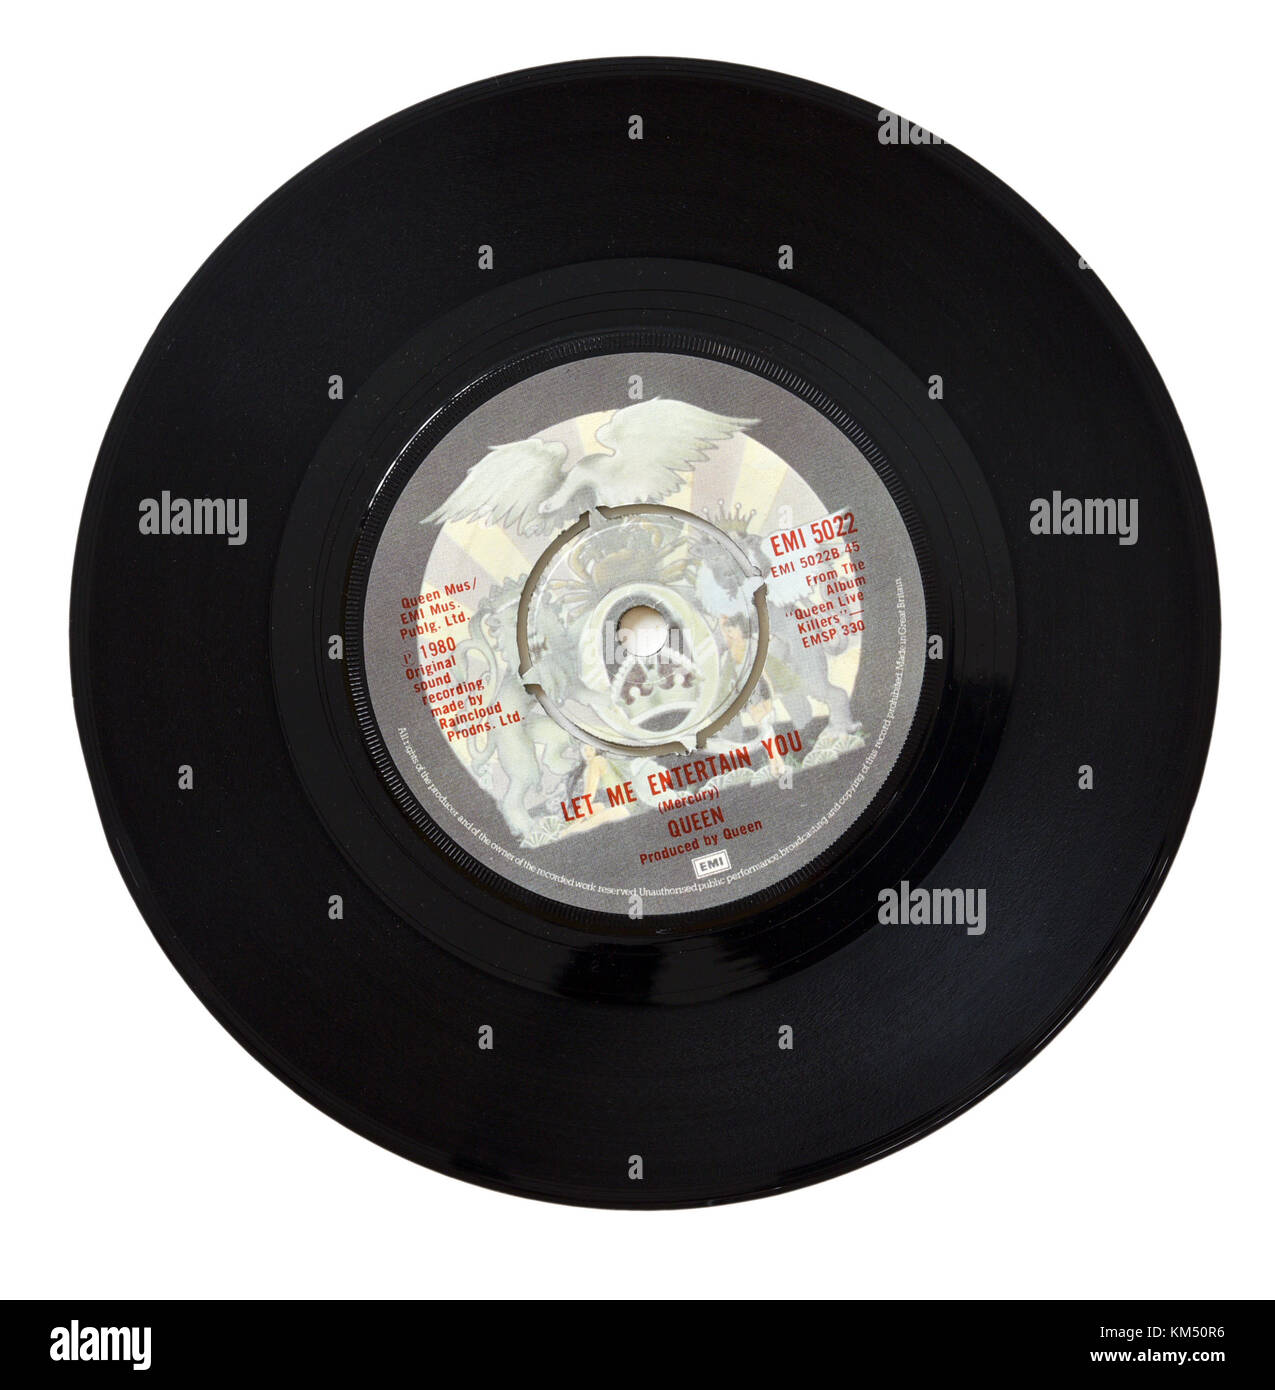 Queen Let Me Entertain You seven inch single - Stock Image